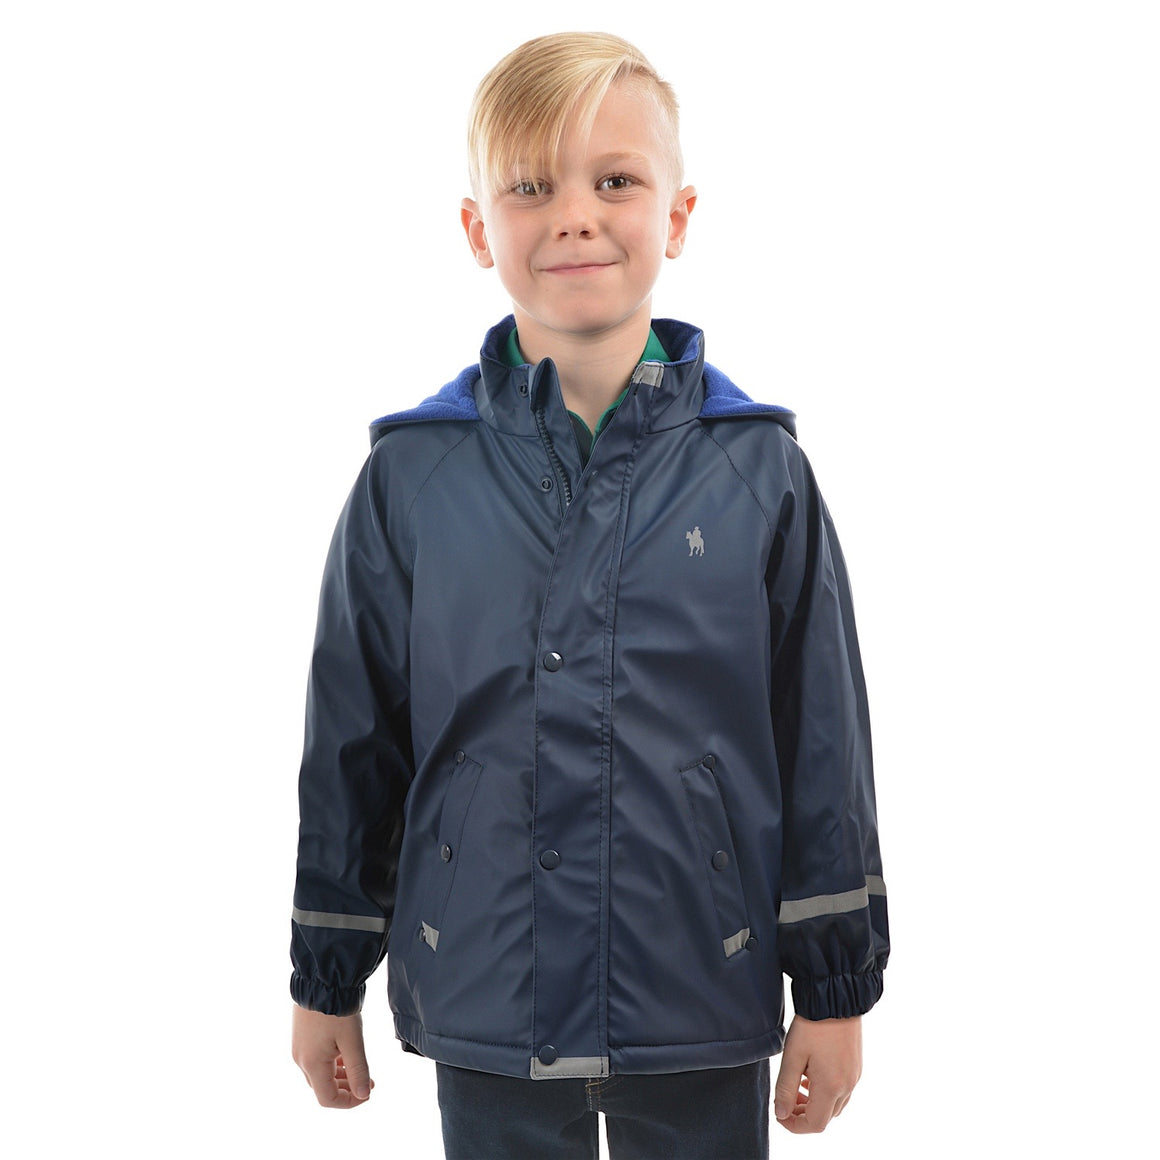 Thomas Cook Kids Reflective Raincoat Dark Navy